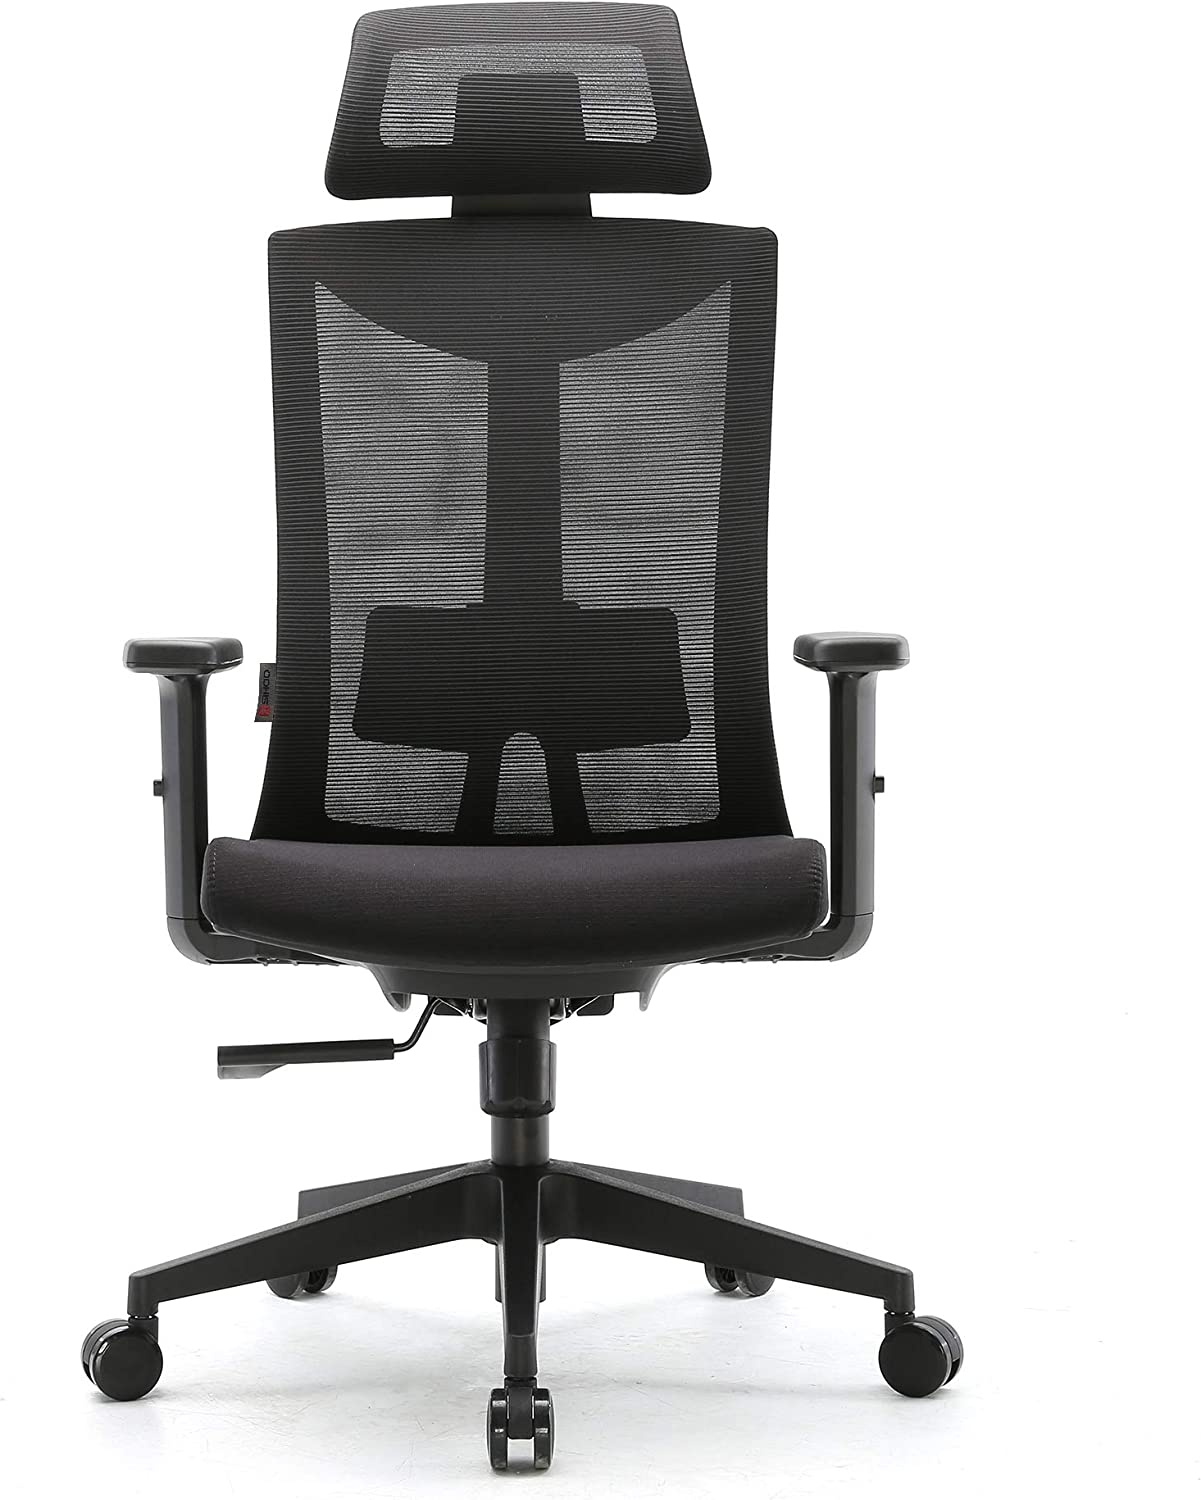 Ergonomic Office Chair Computer Chair Adjustable Head & Arm Rests with Lumbar Support High Back with Breathable Mesh (Black)